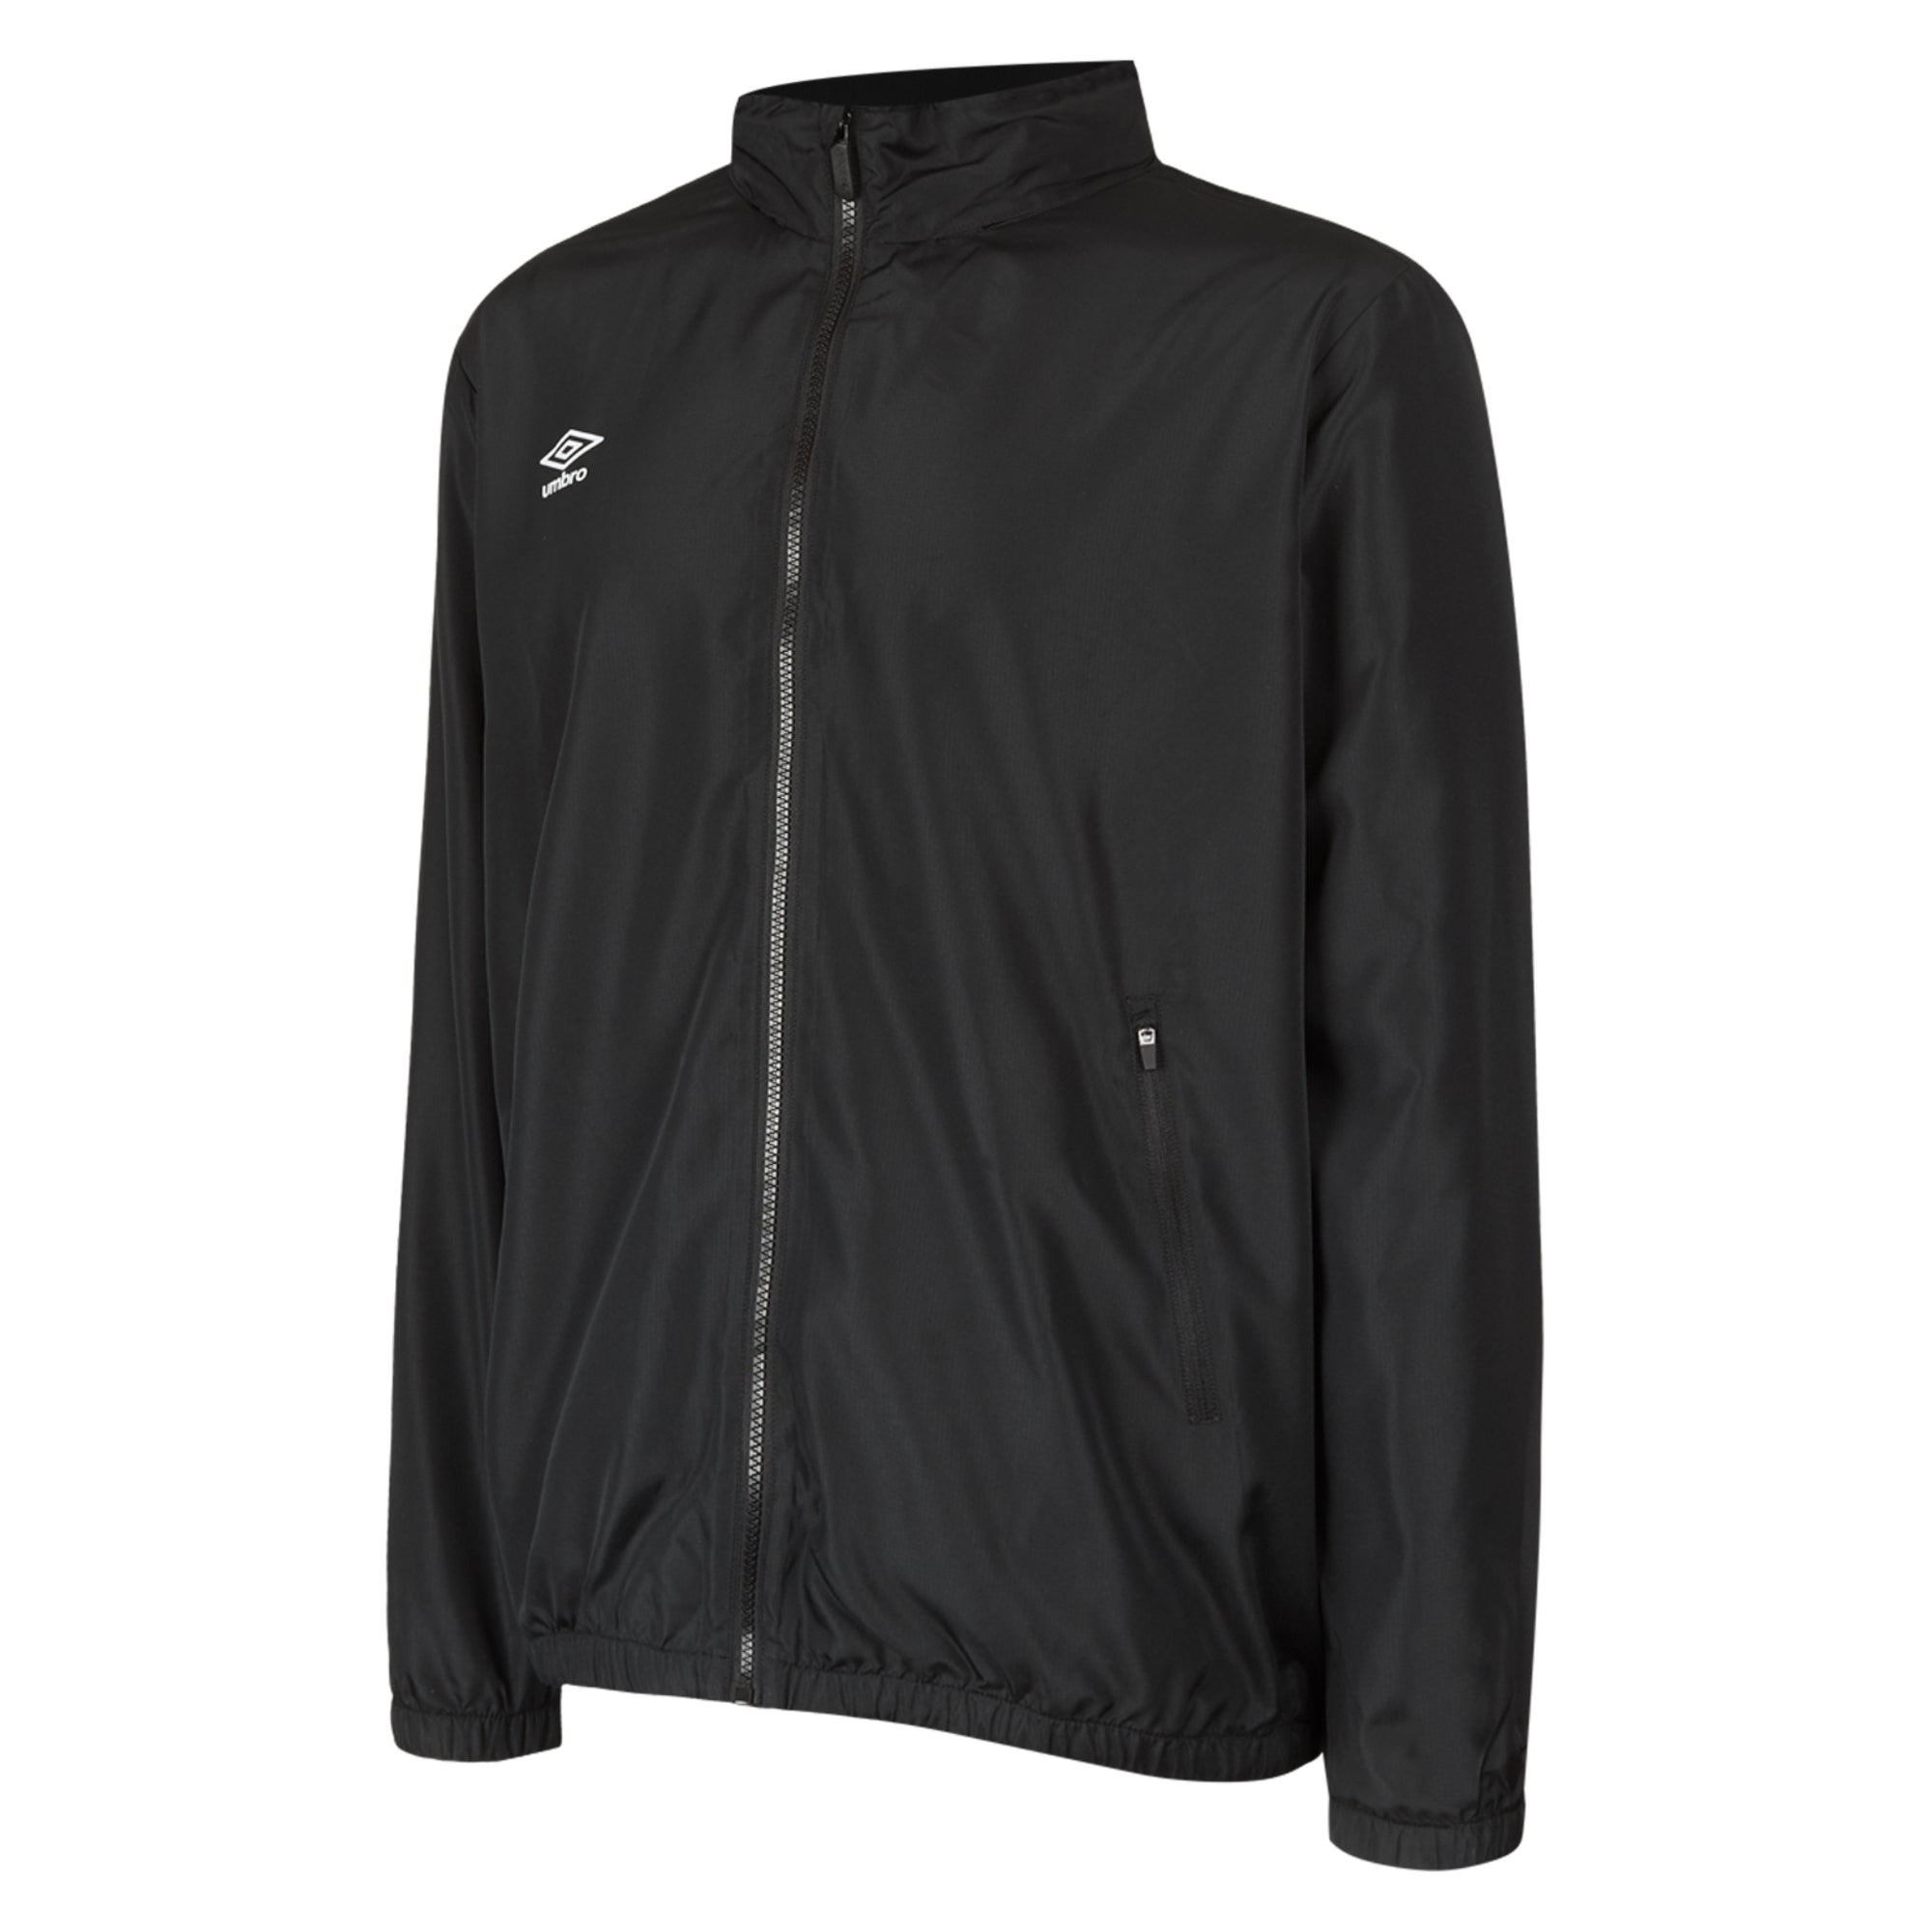 Umbro Club Essential Light Rain Jacket - Black